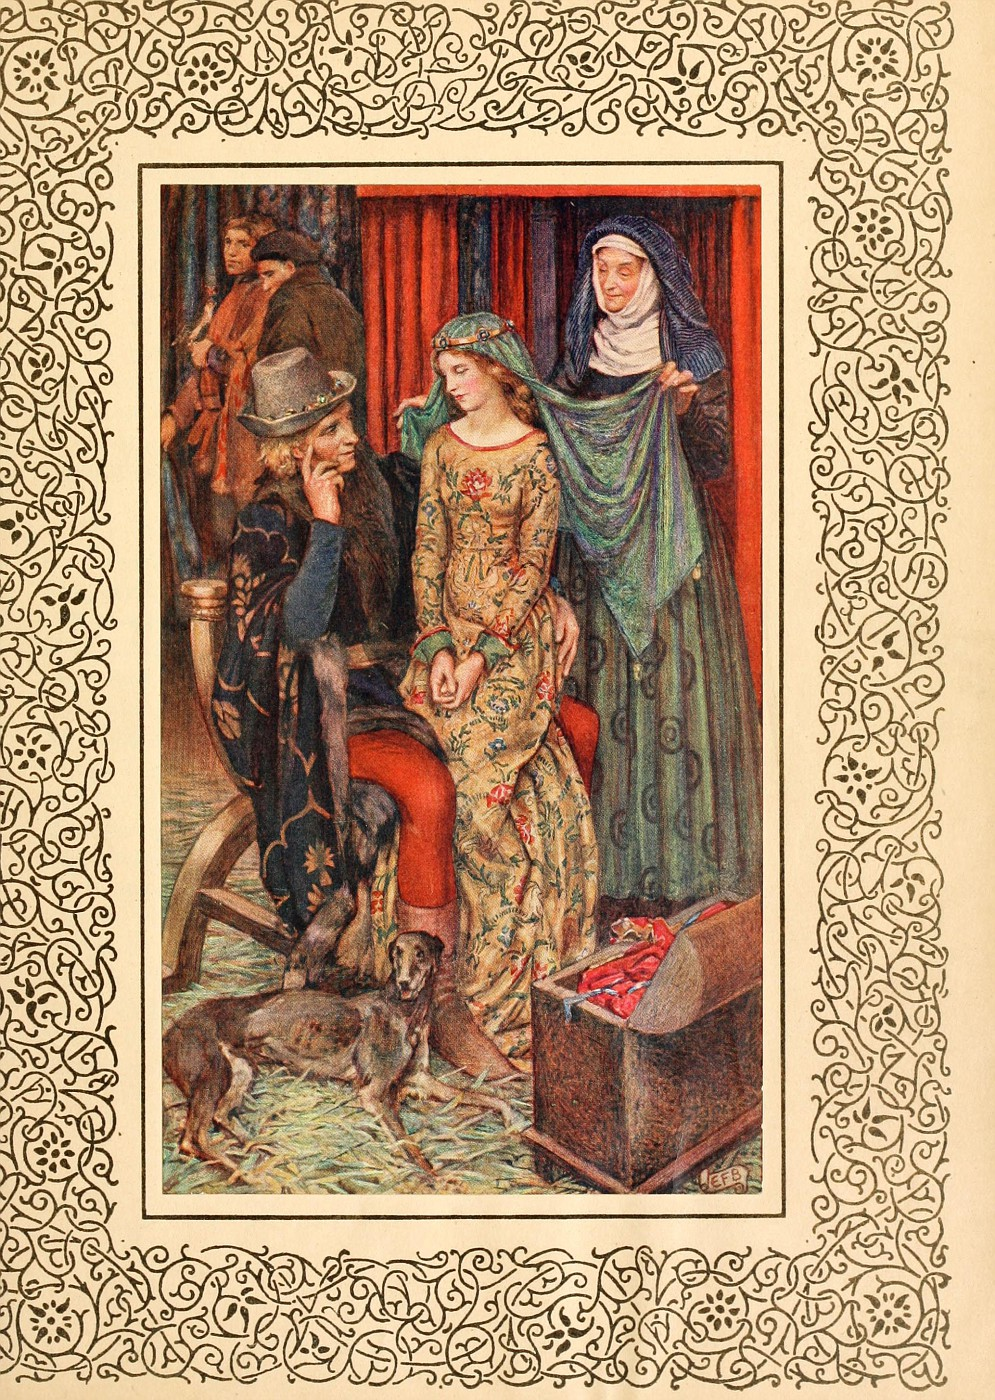 an analysis of geraint and enid a poem based on the arthurian legend by lord alfred tennyson Search the history of over 338 billion web pages on the internet.